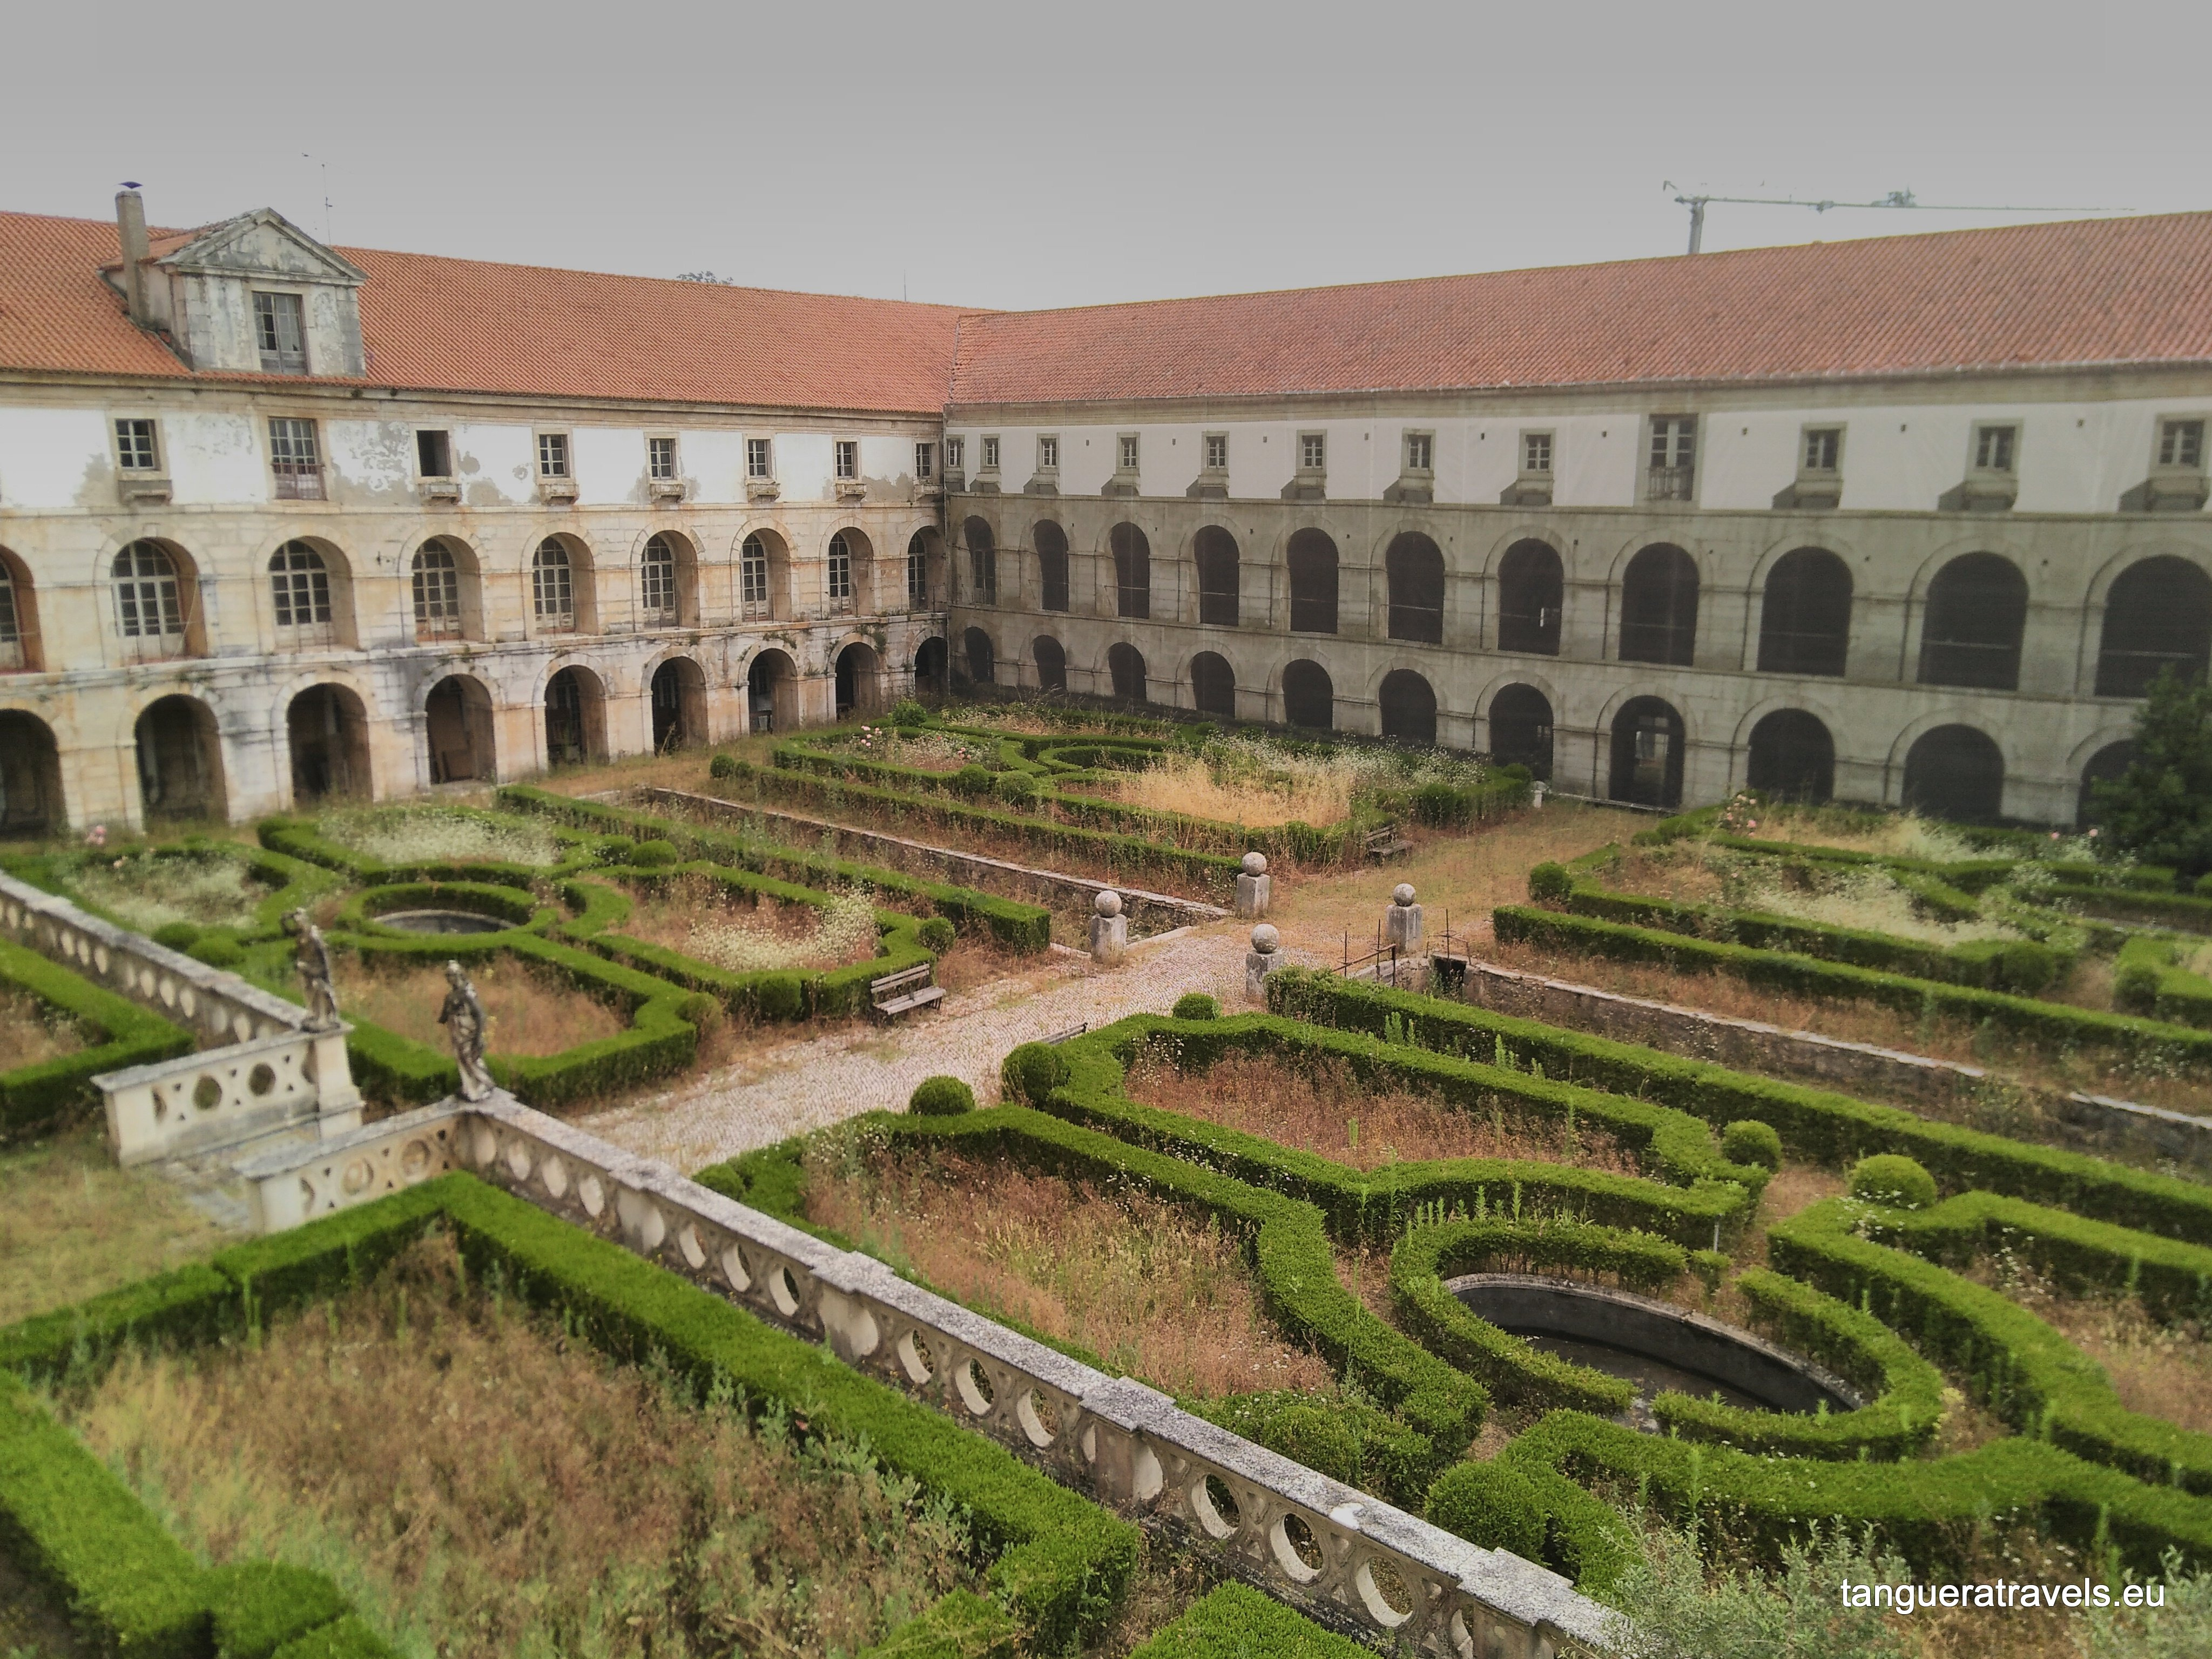 View of the Cloister of the Cardinal from the monks dormitory in the monastery of Alcobaça